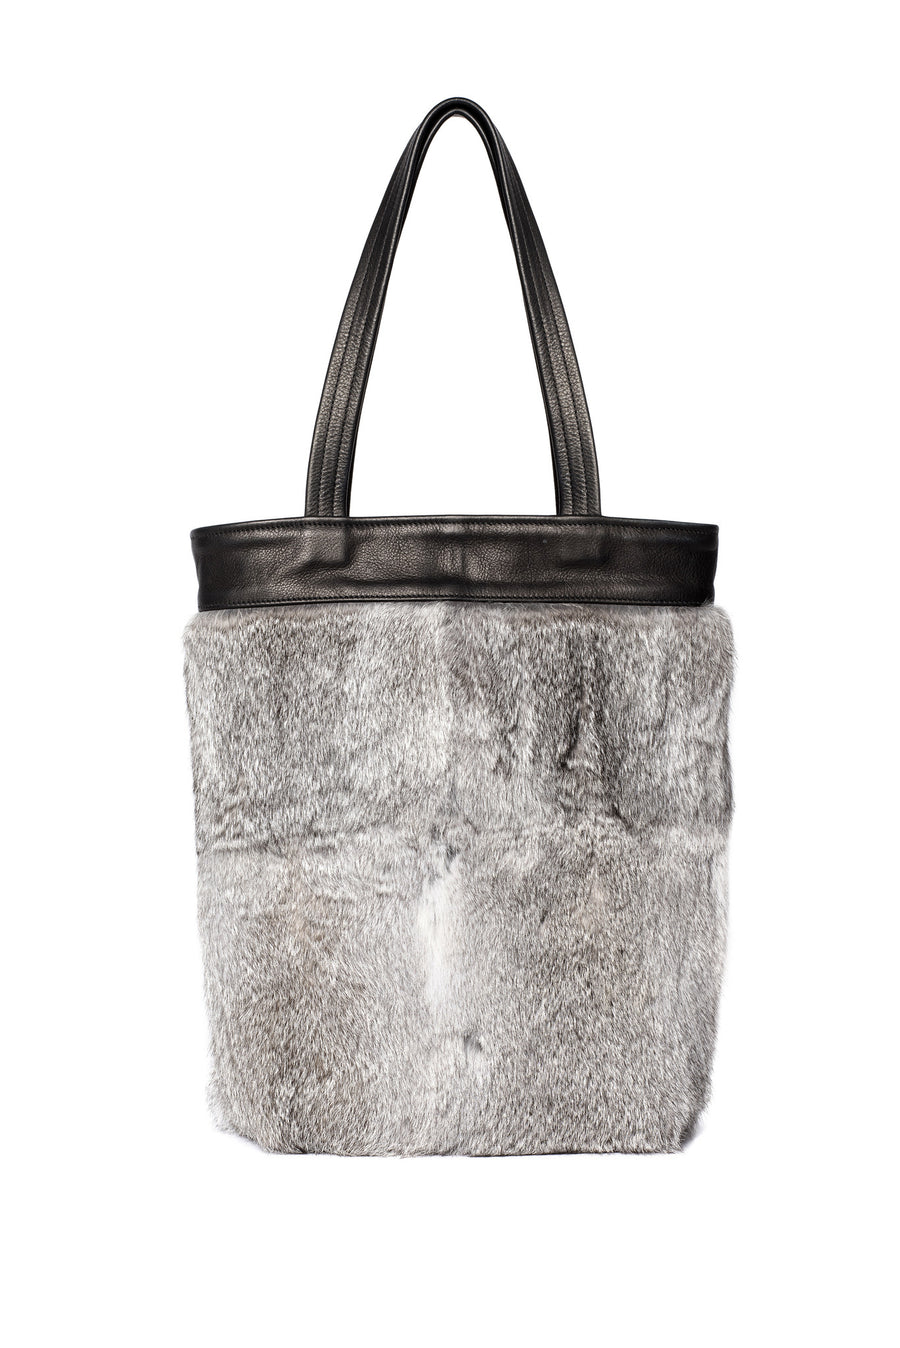 Gray Grey One of a Kind Rabbit Fur Tote Black Leather Wendy Nichol Luxury Handbag Purse Bag Designer handmade in NYC New York City one of a kind Durable Handle strap Interior Pocket High Quality Leather